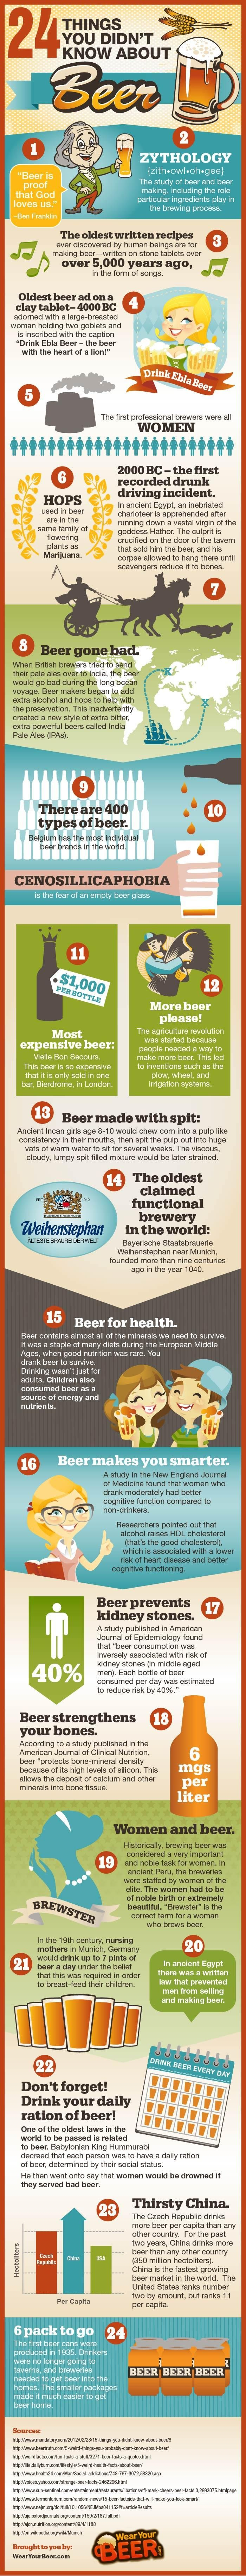 24 Things you didn't know about Beer